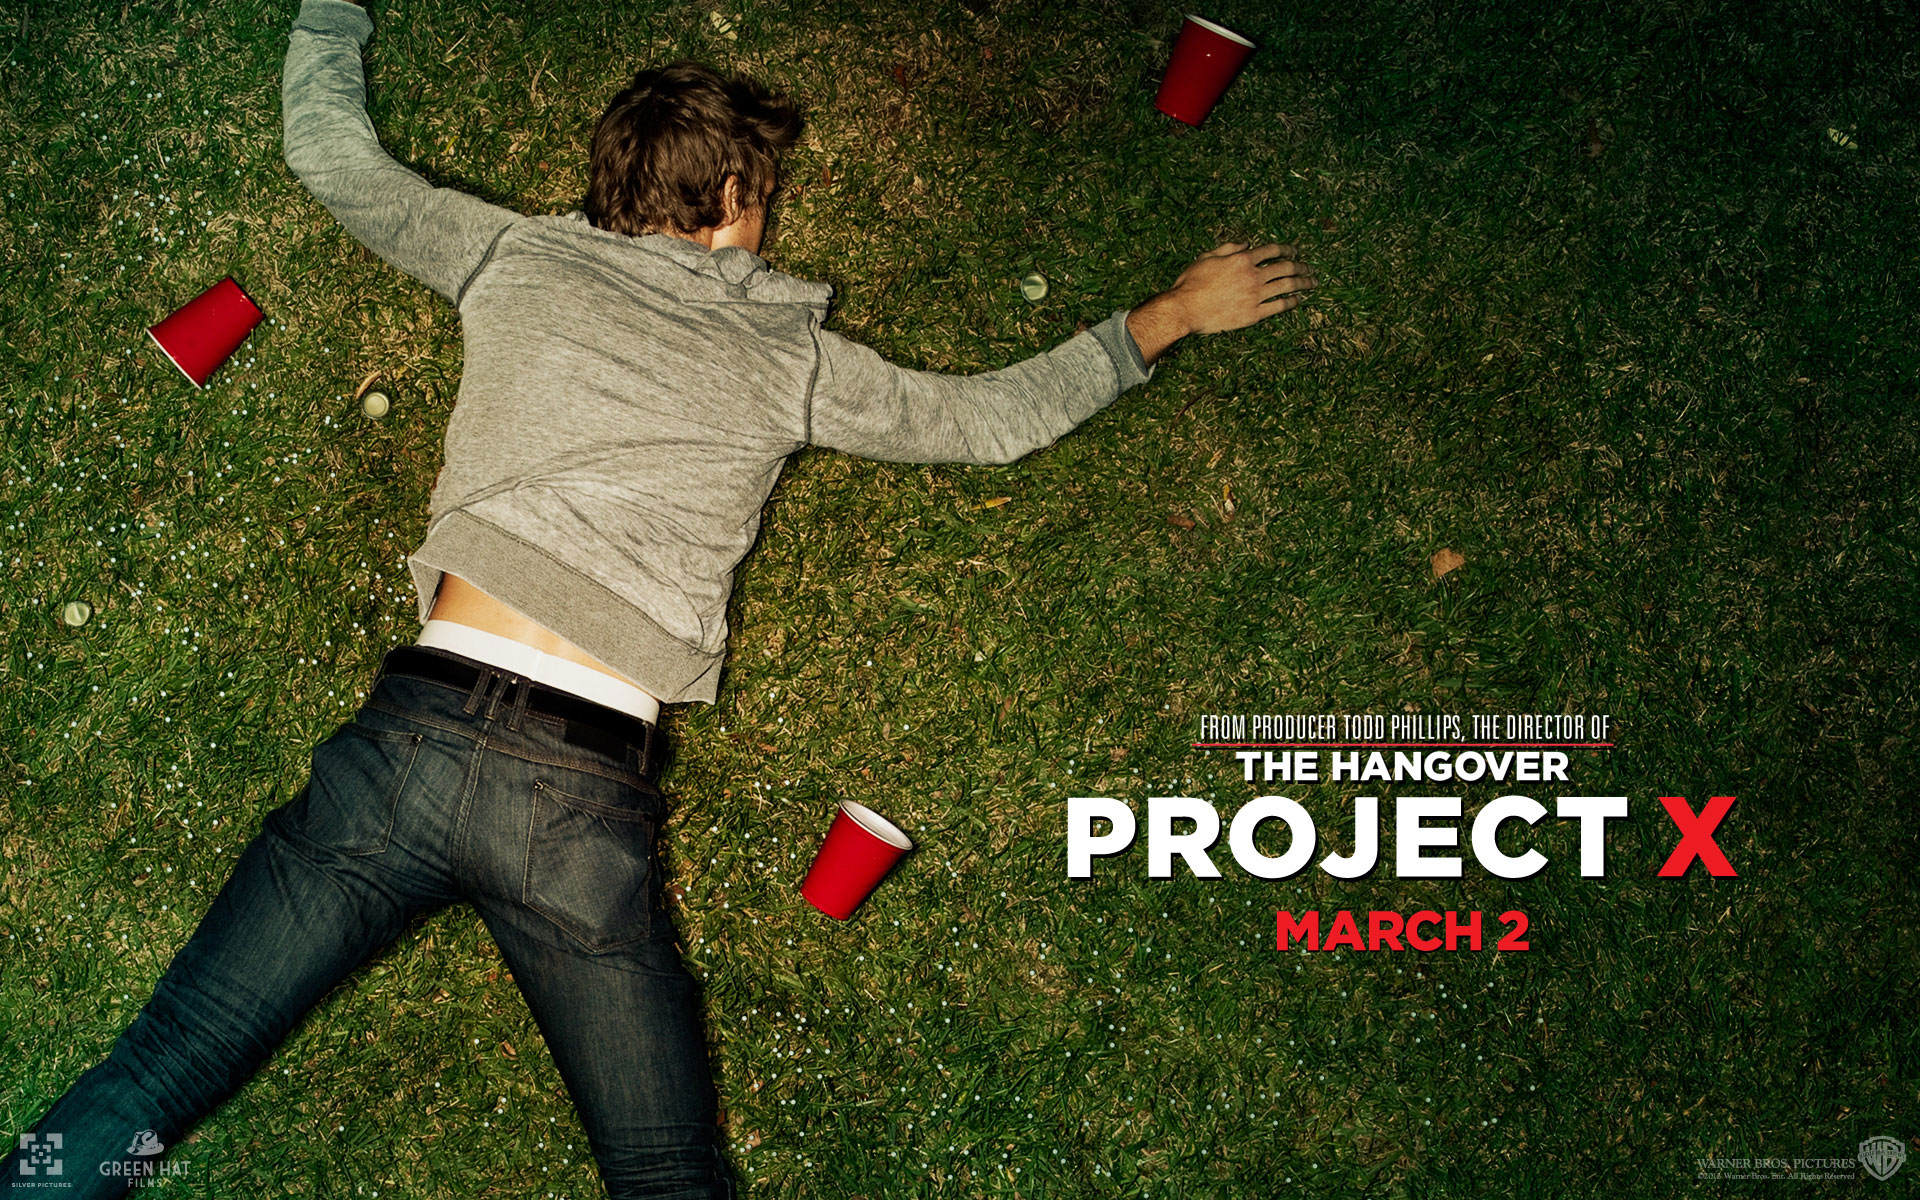 project x Project x is a comedy film that is shot in documentary-style to make it appear real project x tells the story of three high school friends who want to throw the party of their dreams and make it a wild affair the movie shows how the party planning and actual event quickly gets out of hand as word.